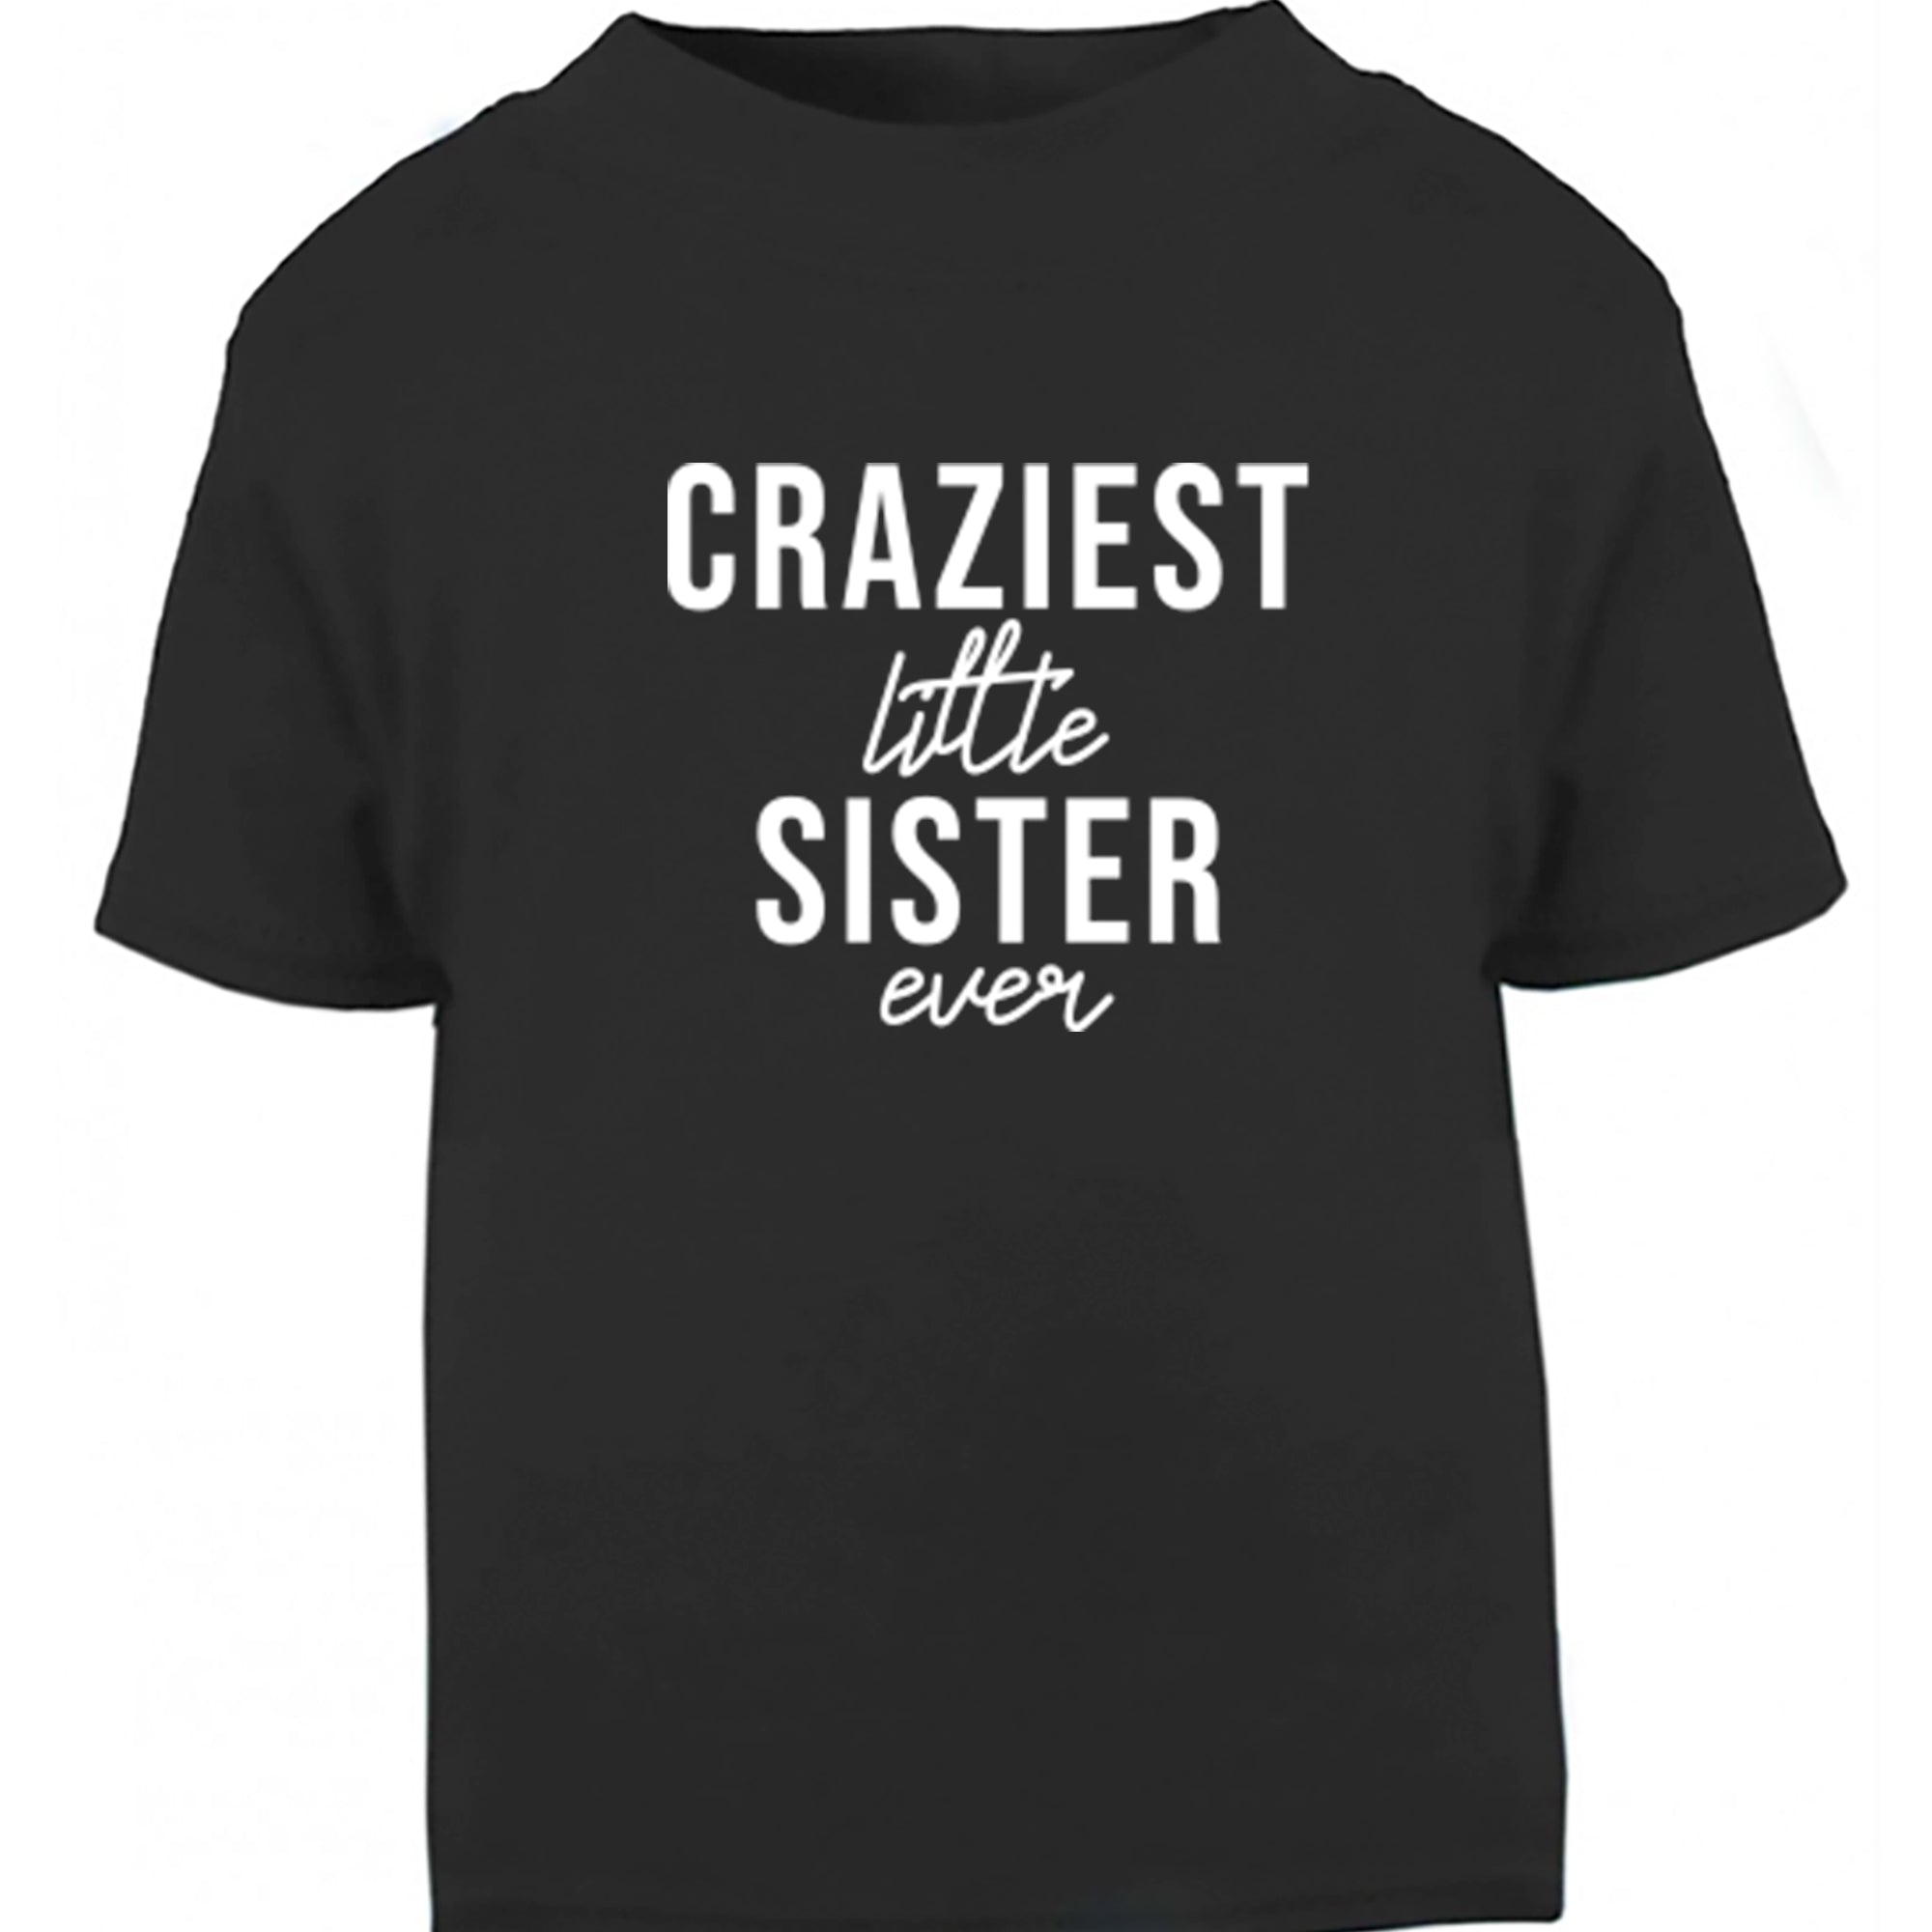 Craziest Little Sister Ever Childrens Ages 3/4-12/14 Unisex Fit T-Shirt S0506 - Illustrated Identity Ltd.